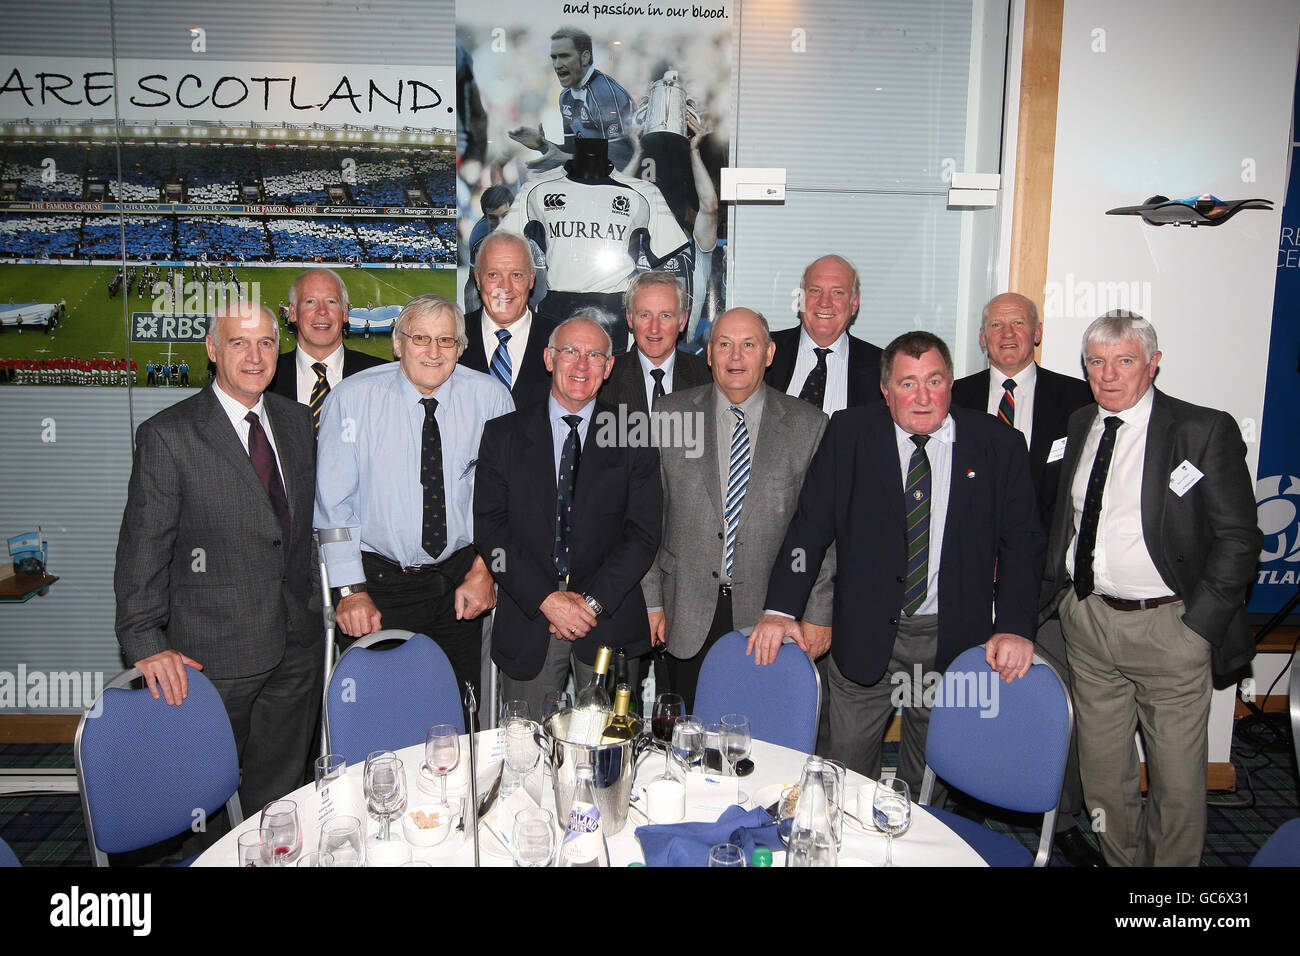 Rugby Union - Bank of Scotland Corporate Autumn Test - Scotland v Argentina - Murrayfield Stadium - Stock Image